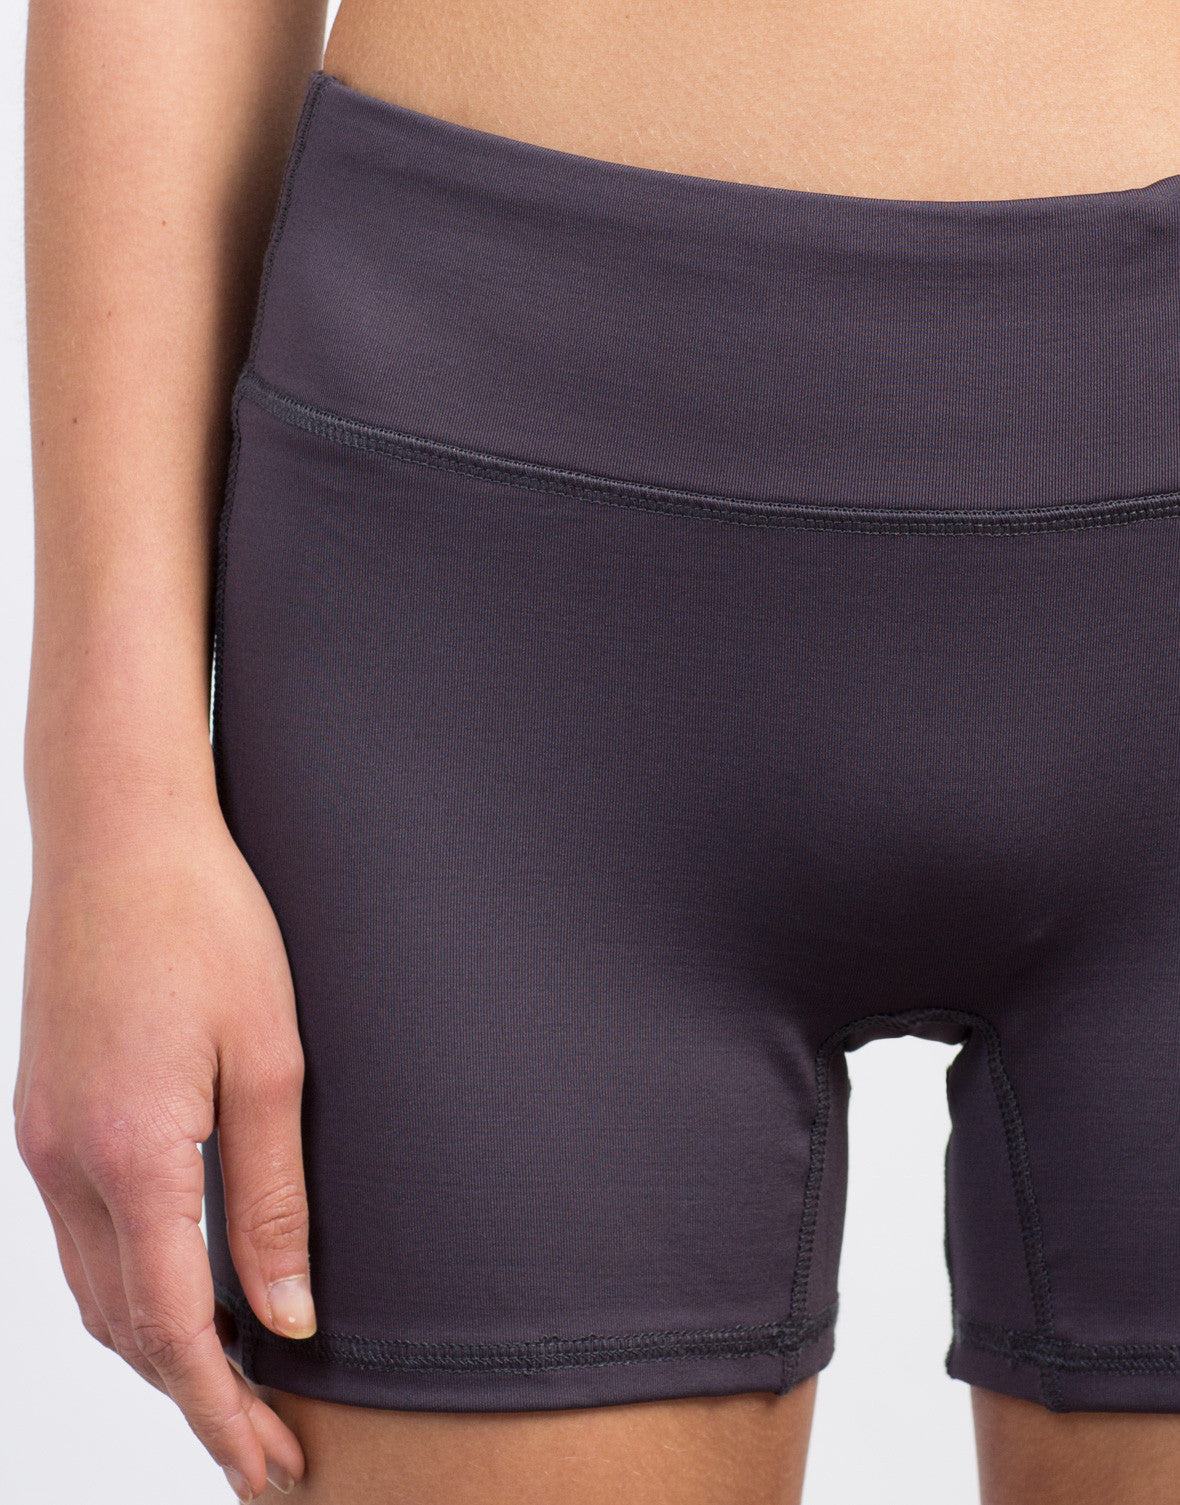 Detail of Spandex Activewear Shorts